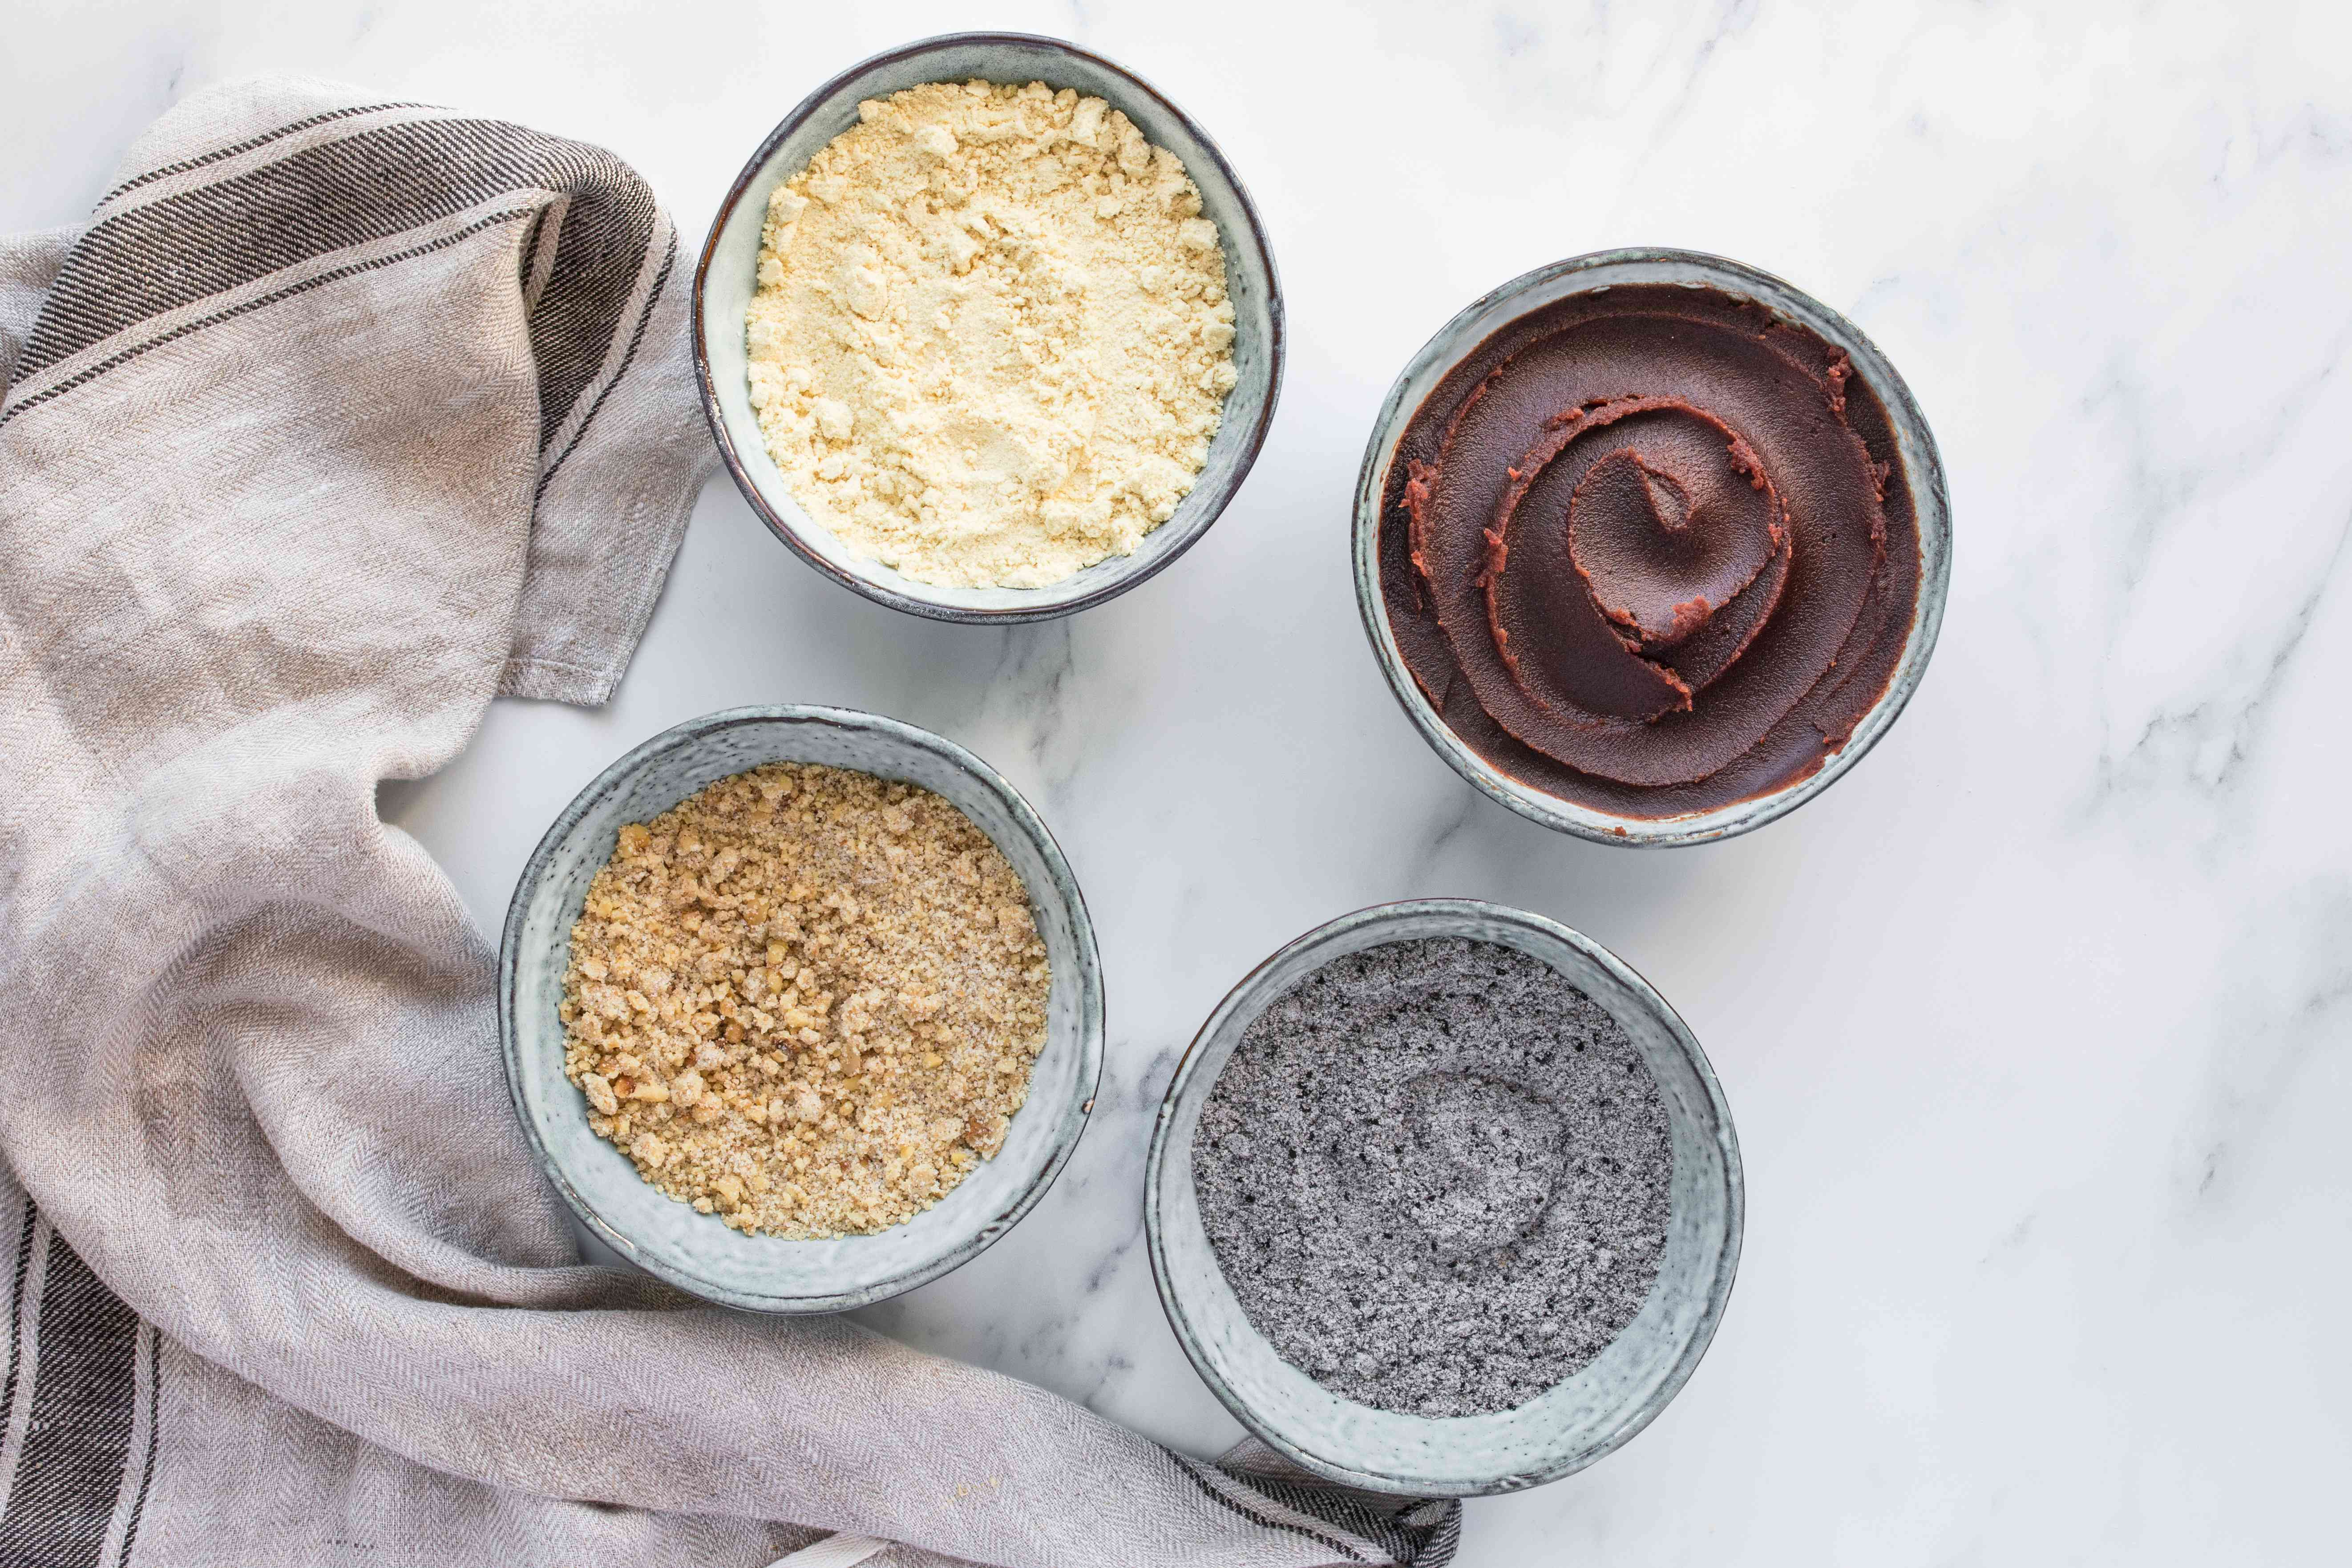 Put prepared toppings in bowls